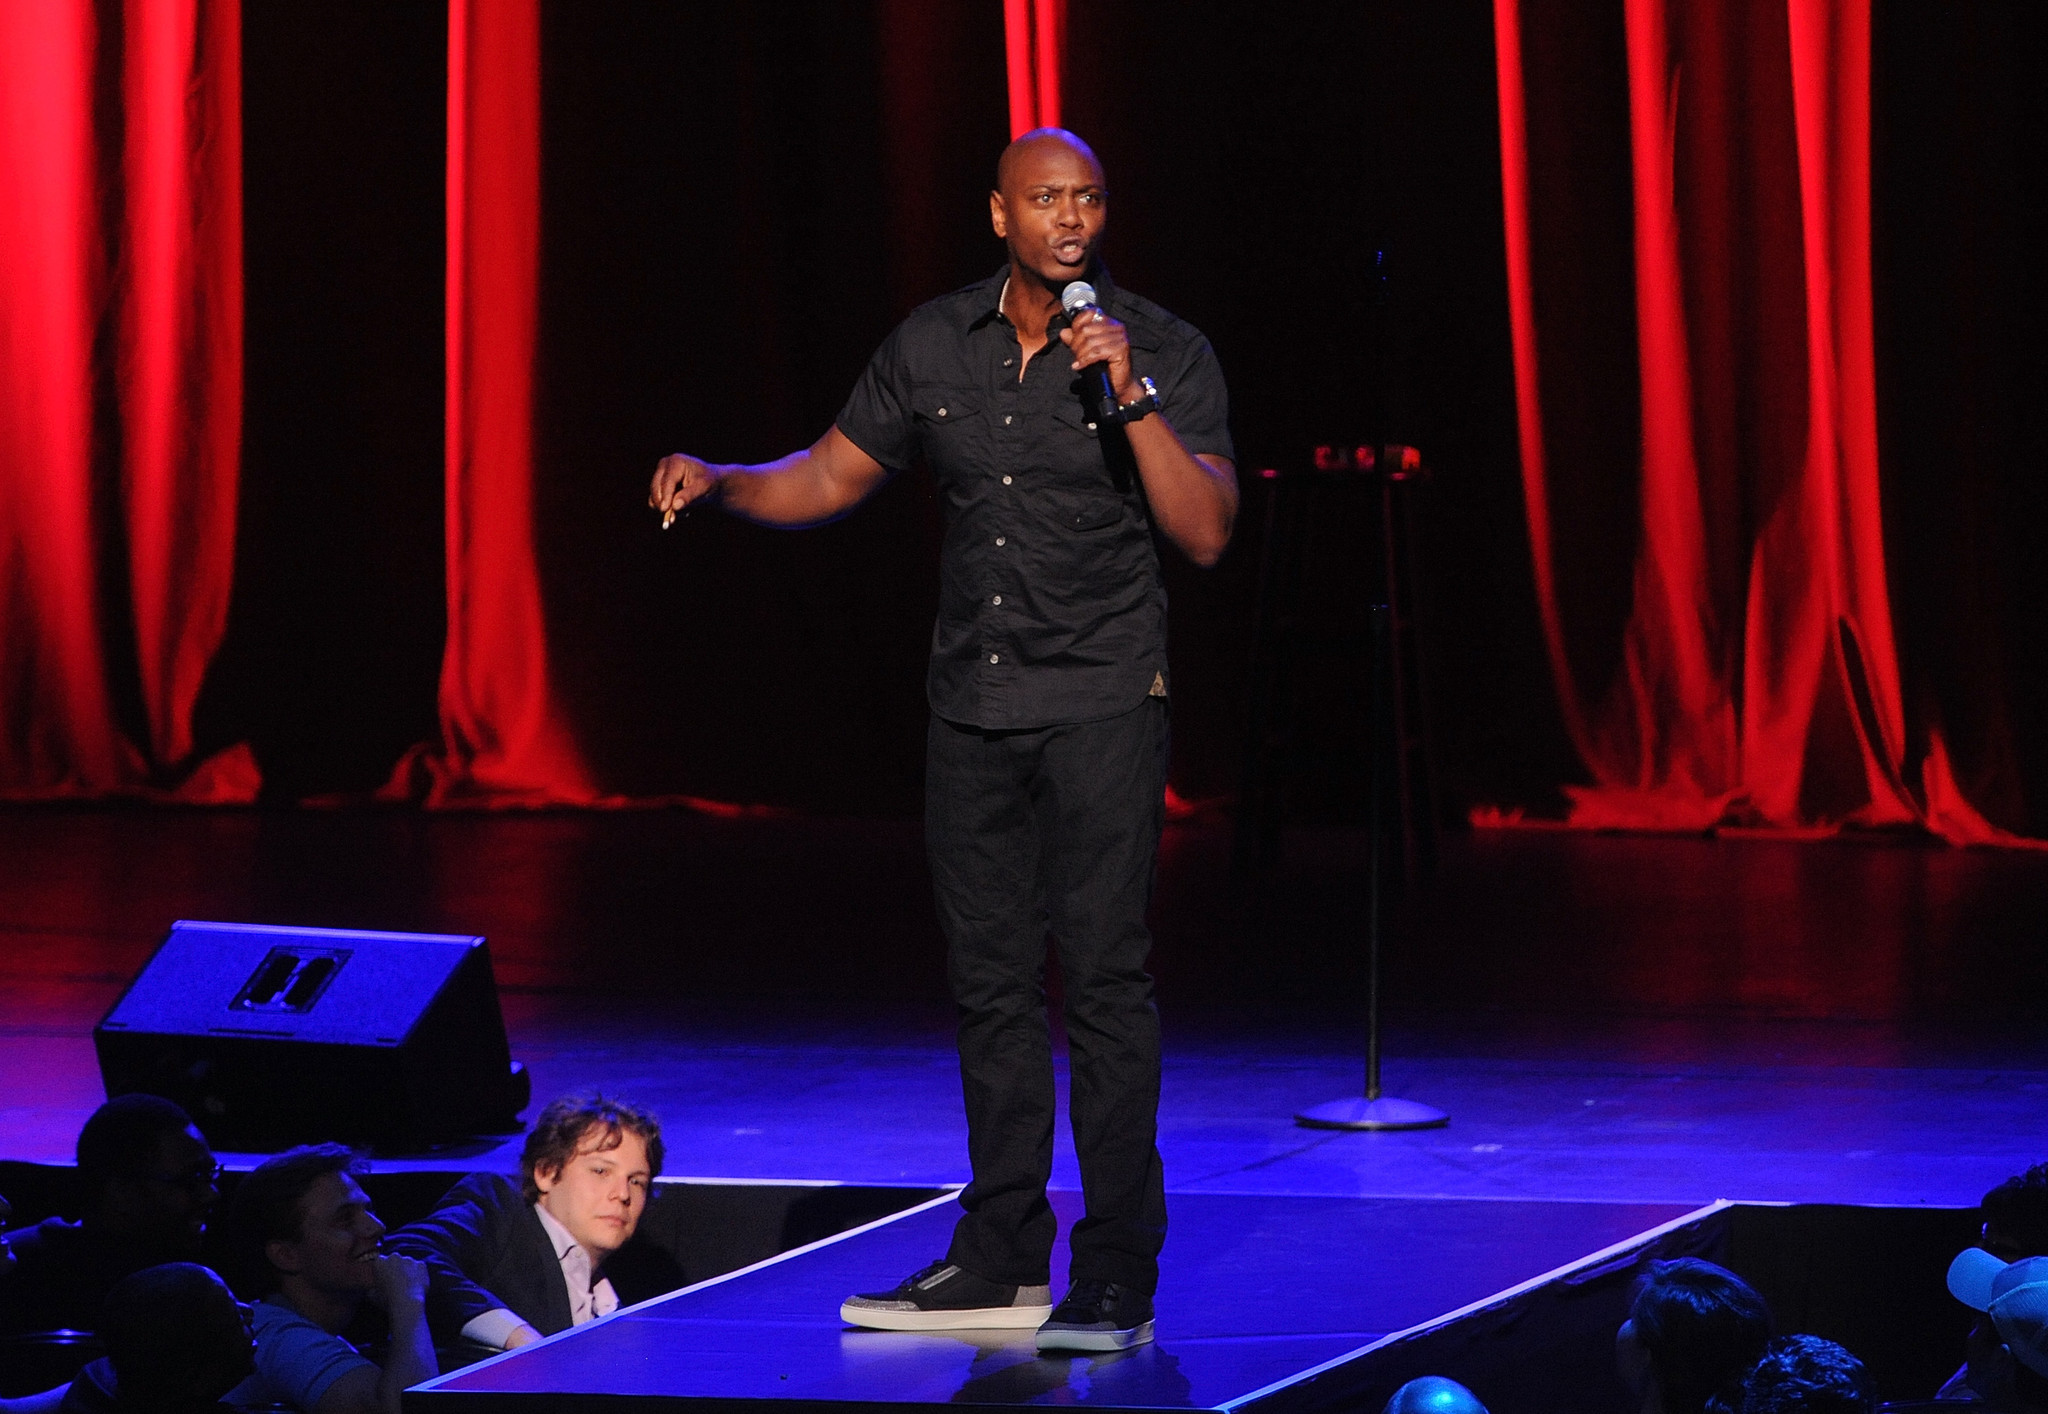 Dave Chappelle says Donald Sterling shouldn't have lost Clippers